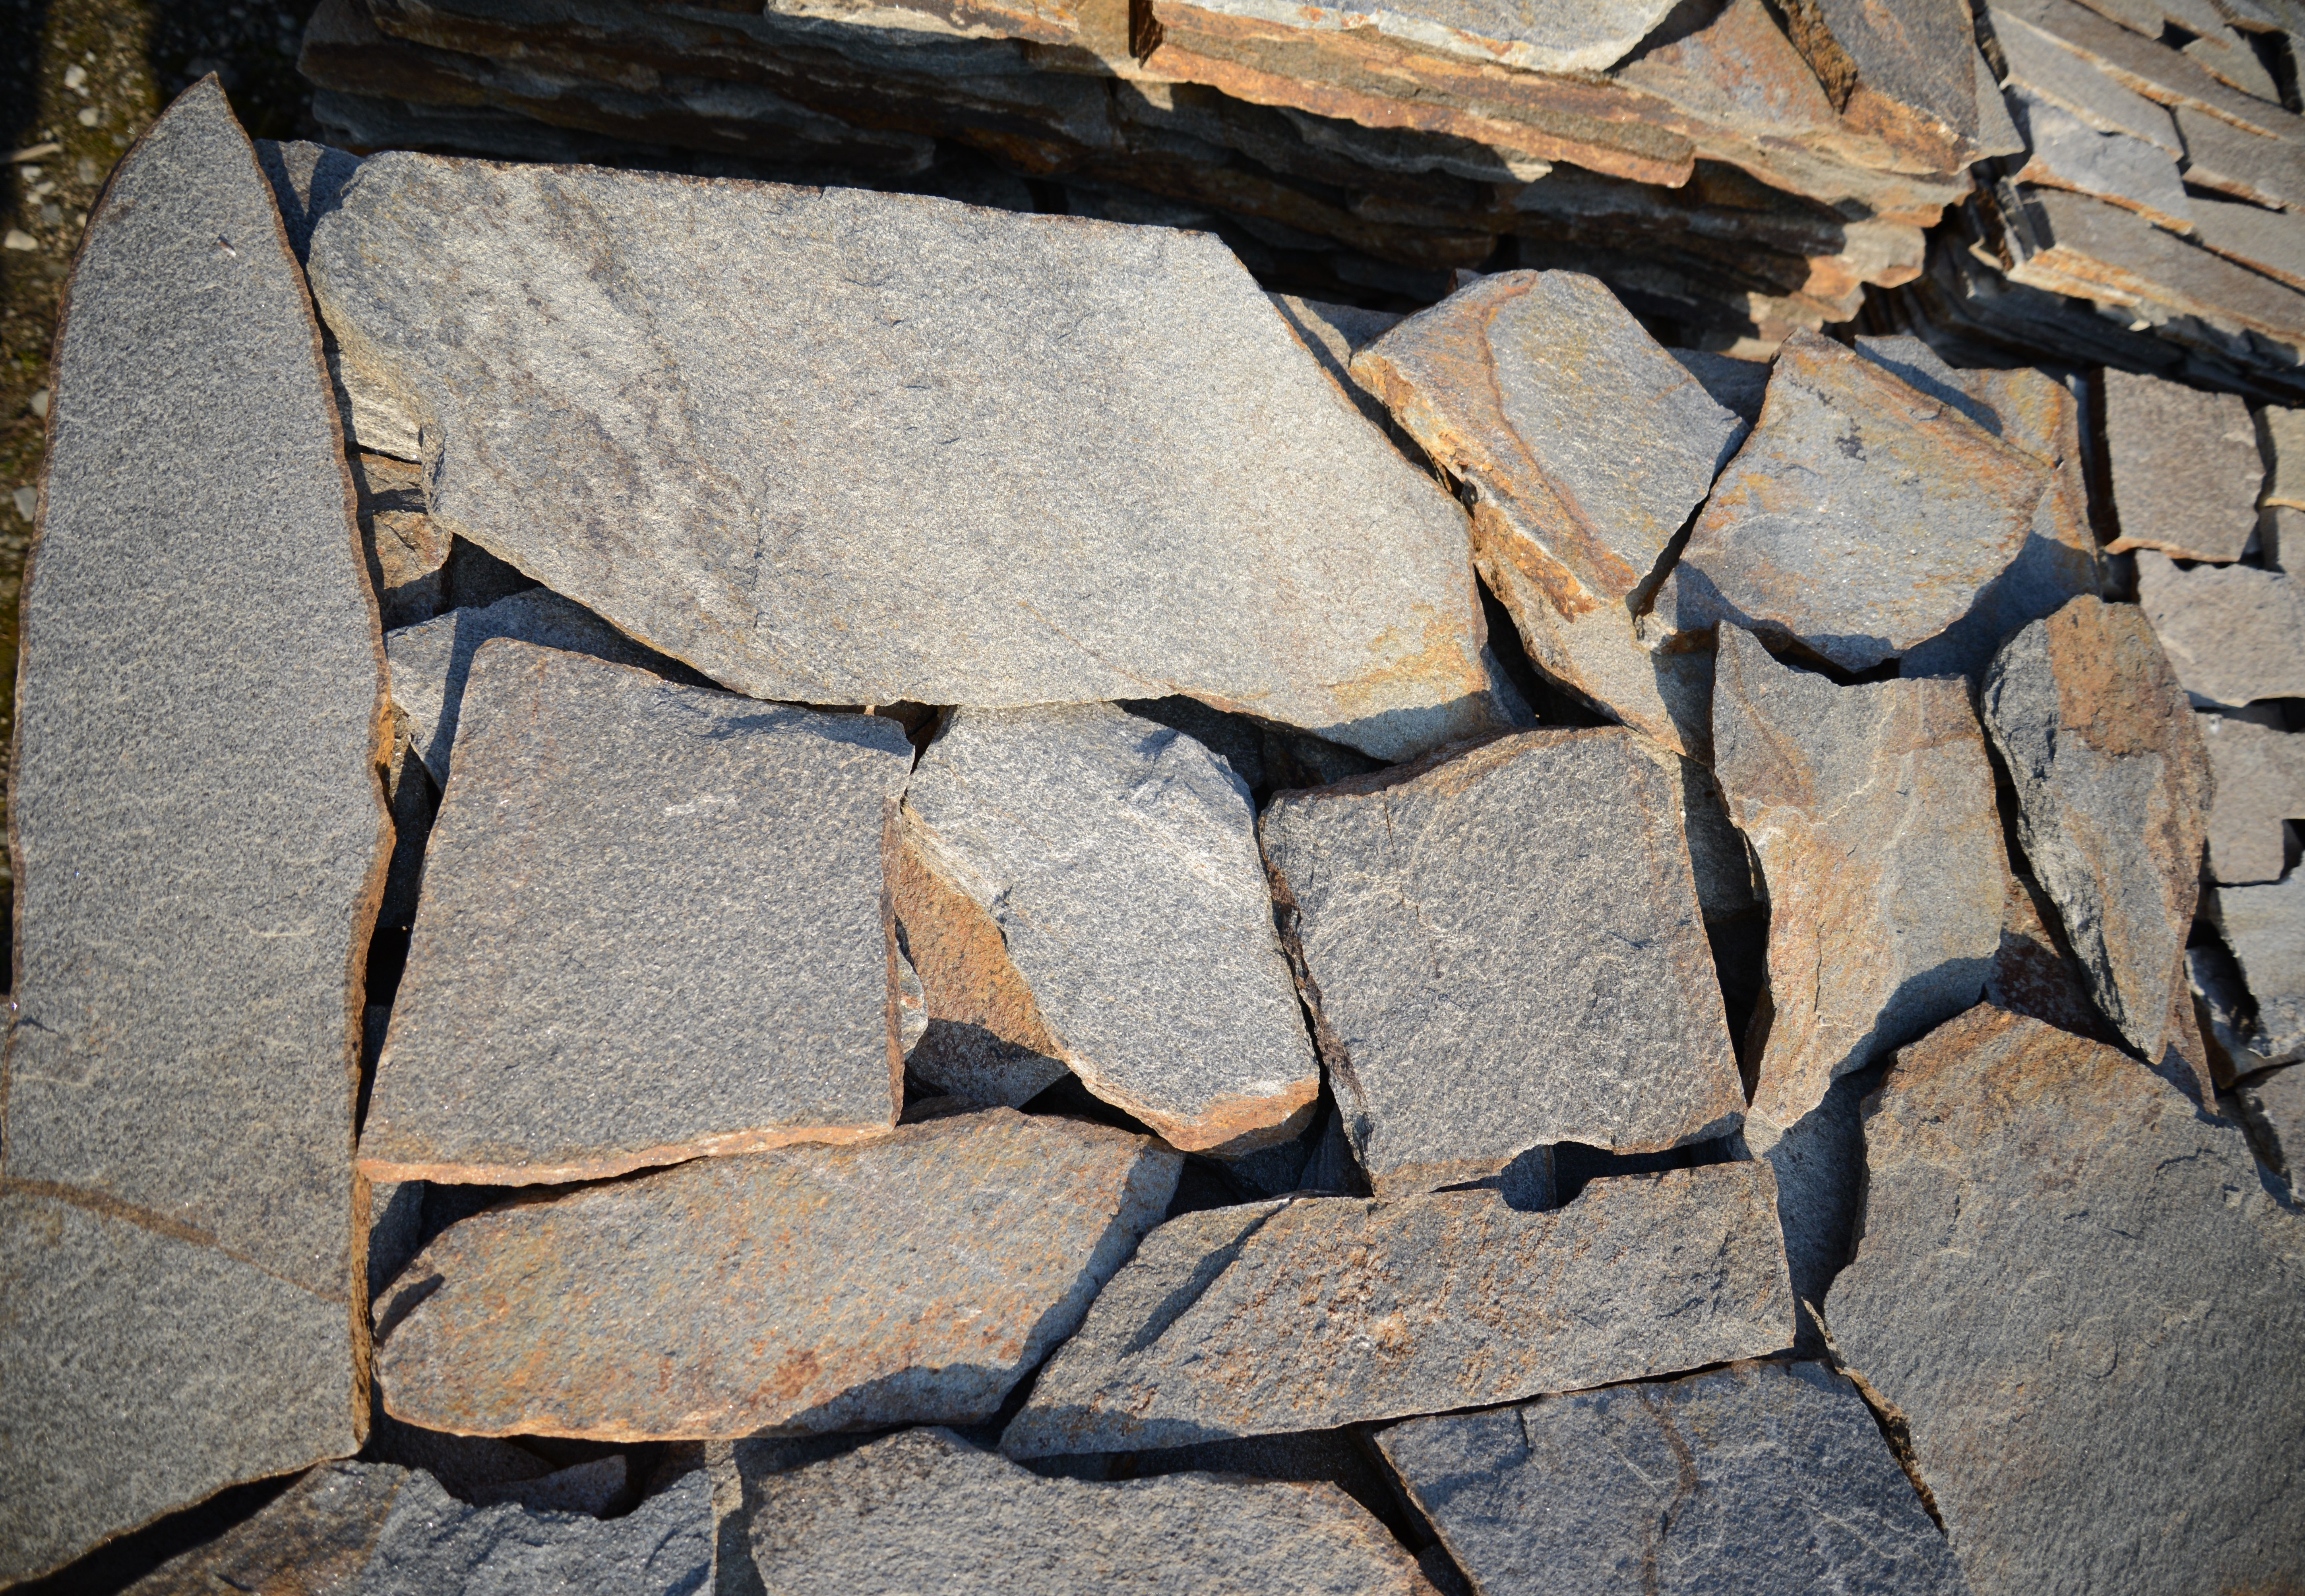 Polygonal plates Unformed Metallic - natural stone Gneiss